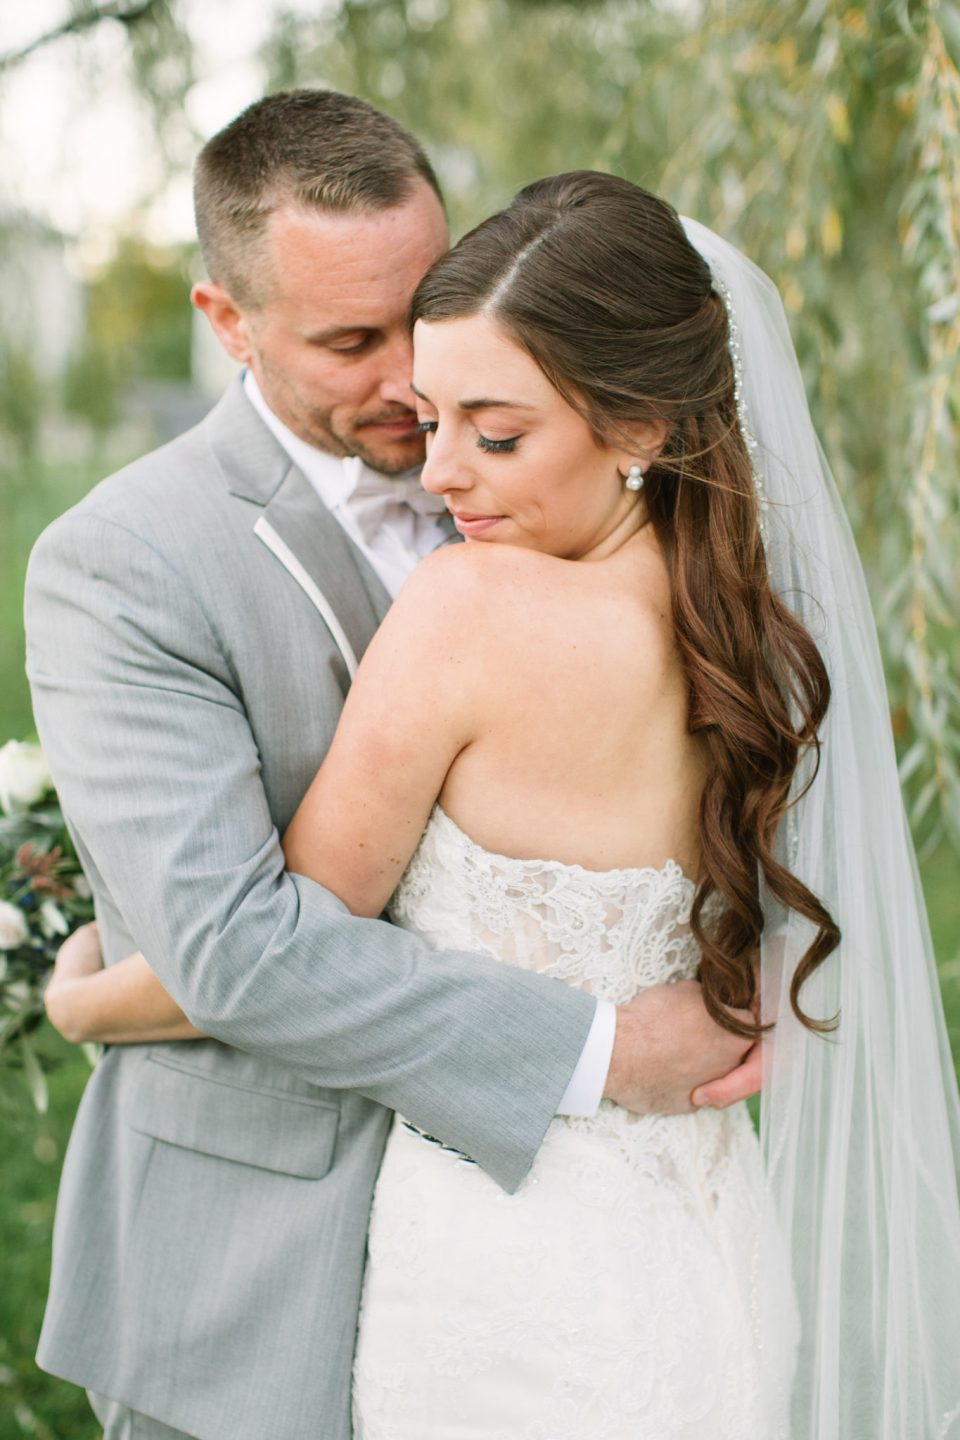 romantic wedding photos by Ashley Mac Photographs in Middletown NJ